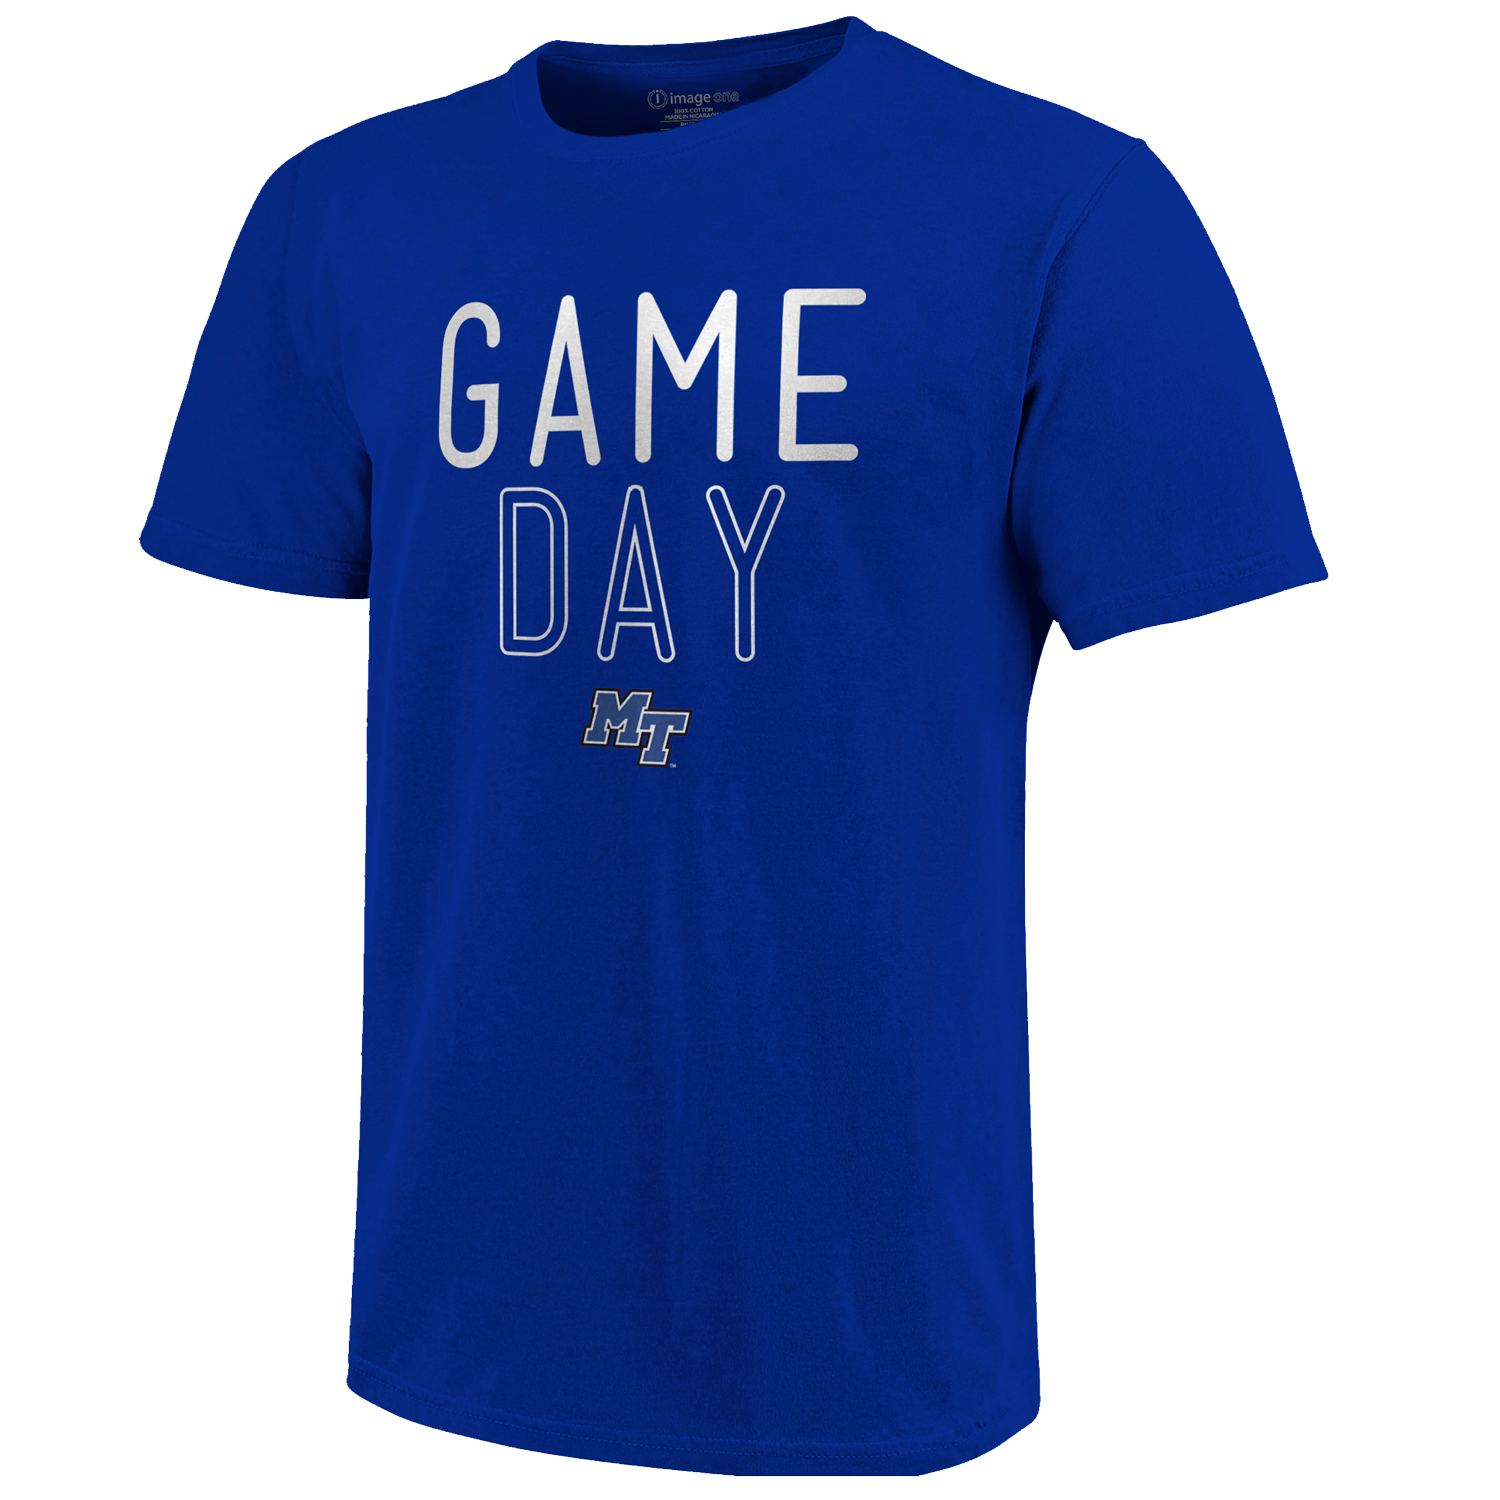 GAME DAY MT Tshirt